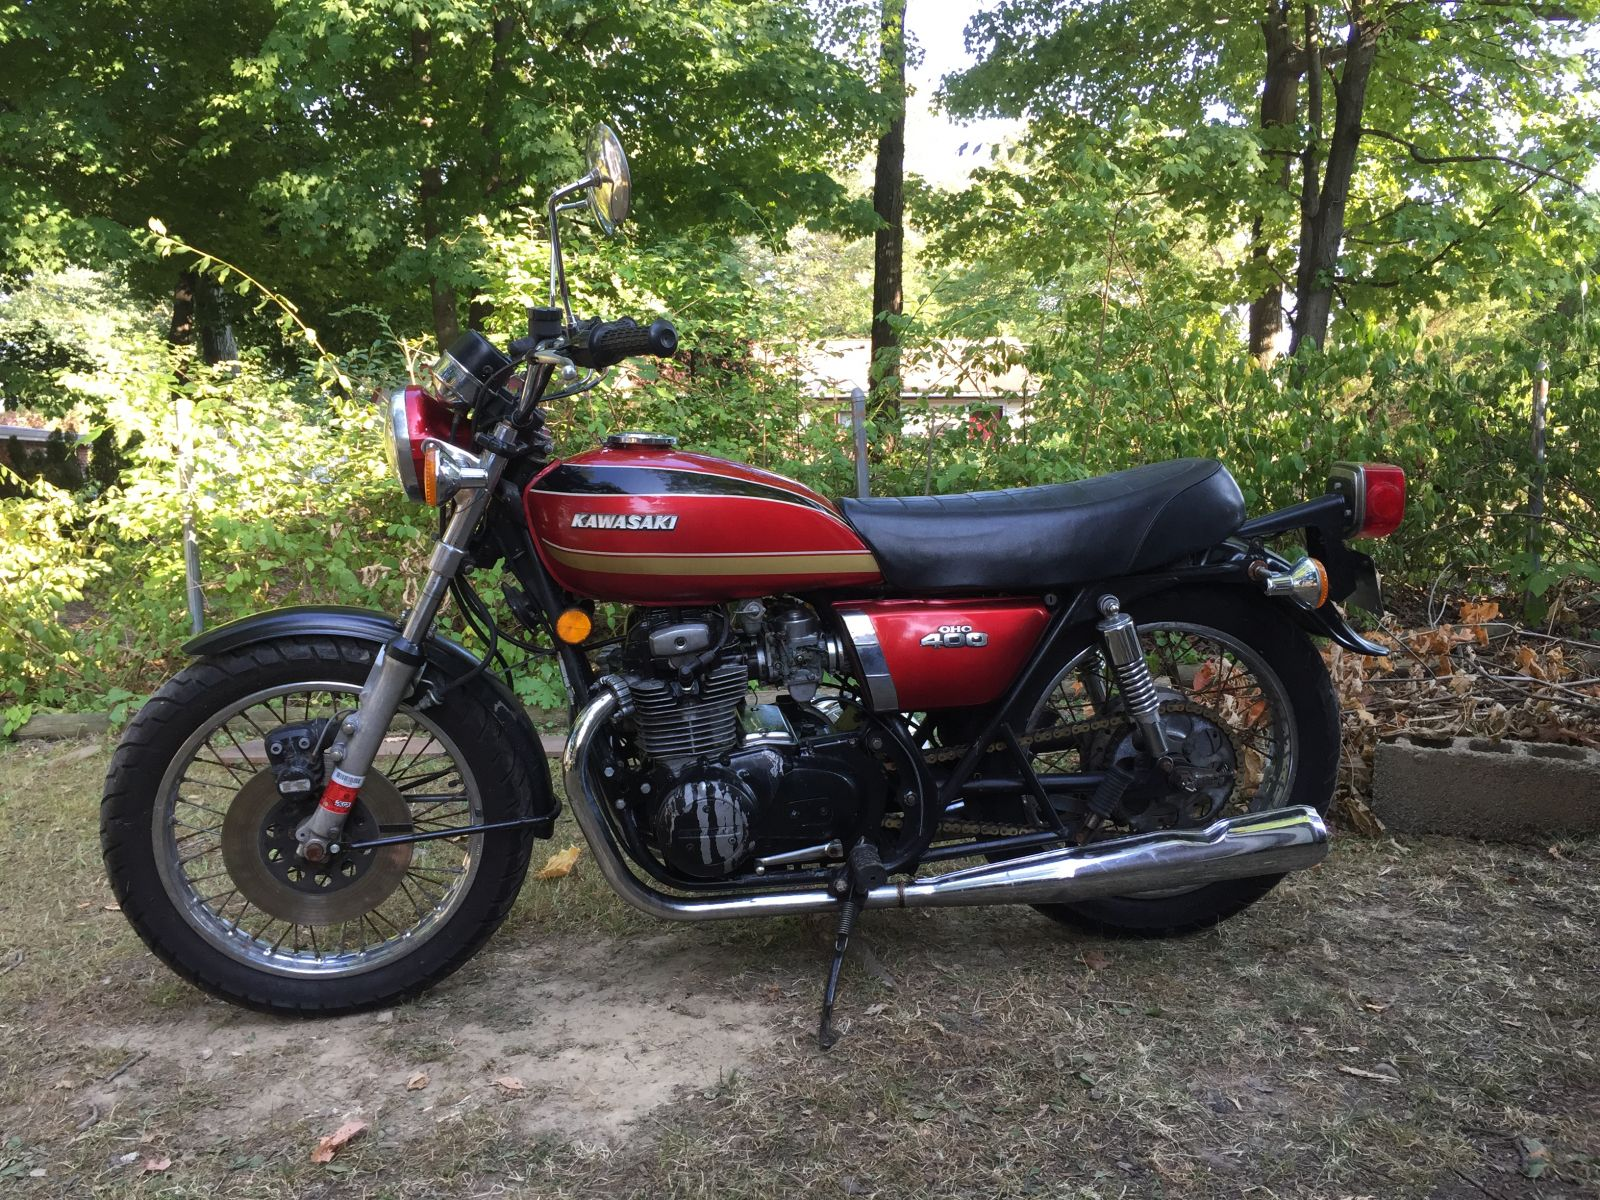 1974 kz400 cafe racer build - kzrider forum - kzrider, kz, z1 & z